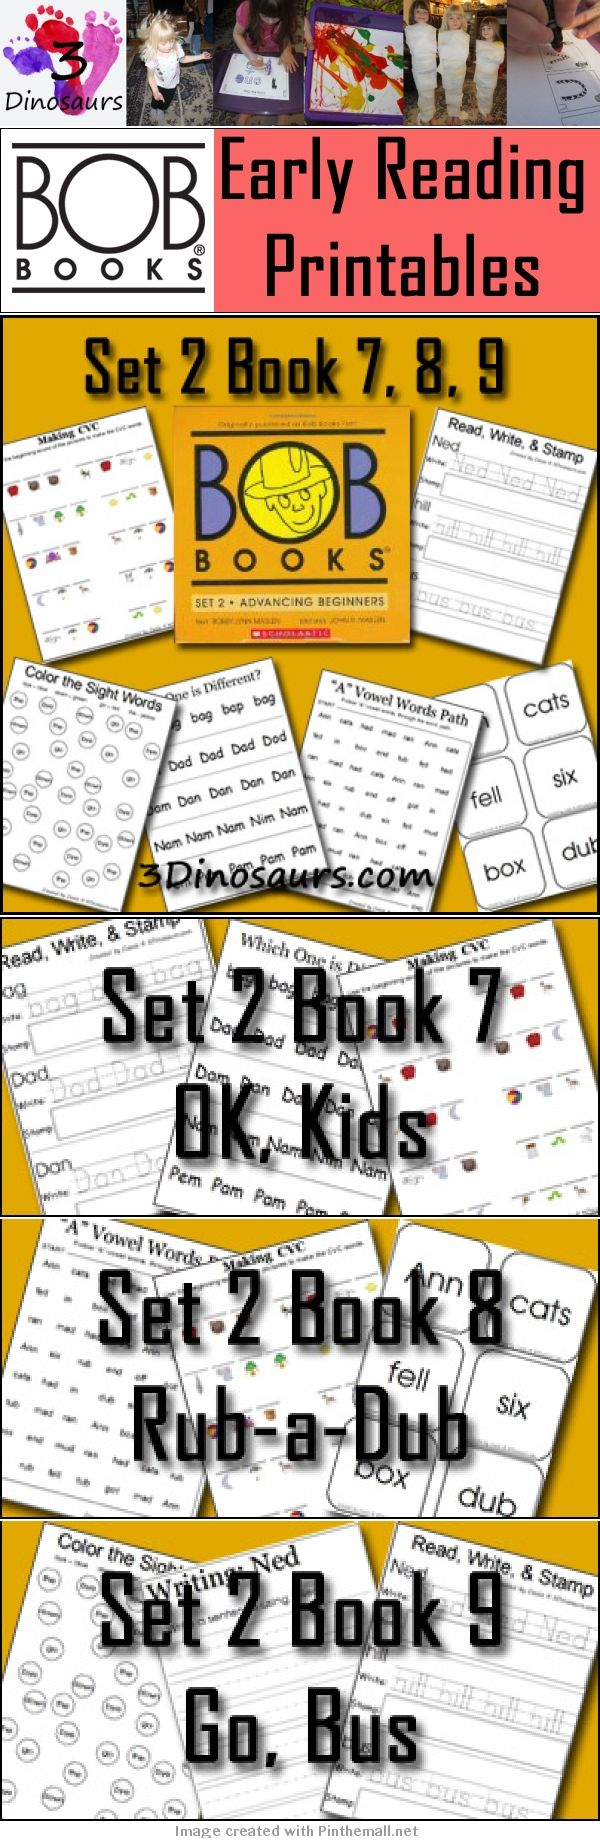 The FREE BOB Book printables are here for books 7-9 of Set 2! | Book 7: OK, Kids | Book 8: Rub-a-Dub | Book 9: Go, Bus | Short Vowels i u and o | This week you will find Vowel Word Paths, Read Write & Stamp, Making BOB Book Words, Write a Sentence with the Word, Which One is Different, Color the Sight Word, and Cube Flashcards. All the words from the books are used. I hope you enjoy them as much as we have!